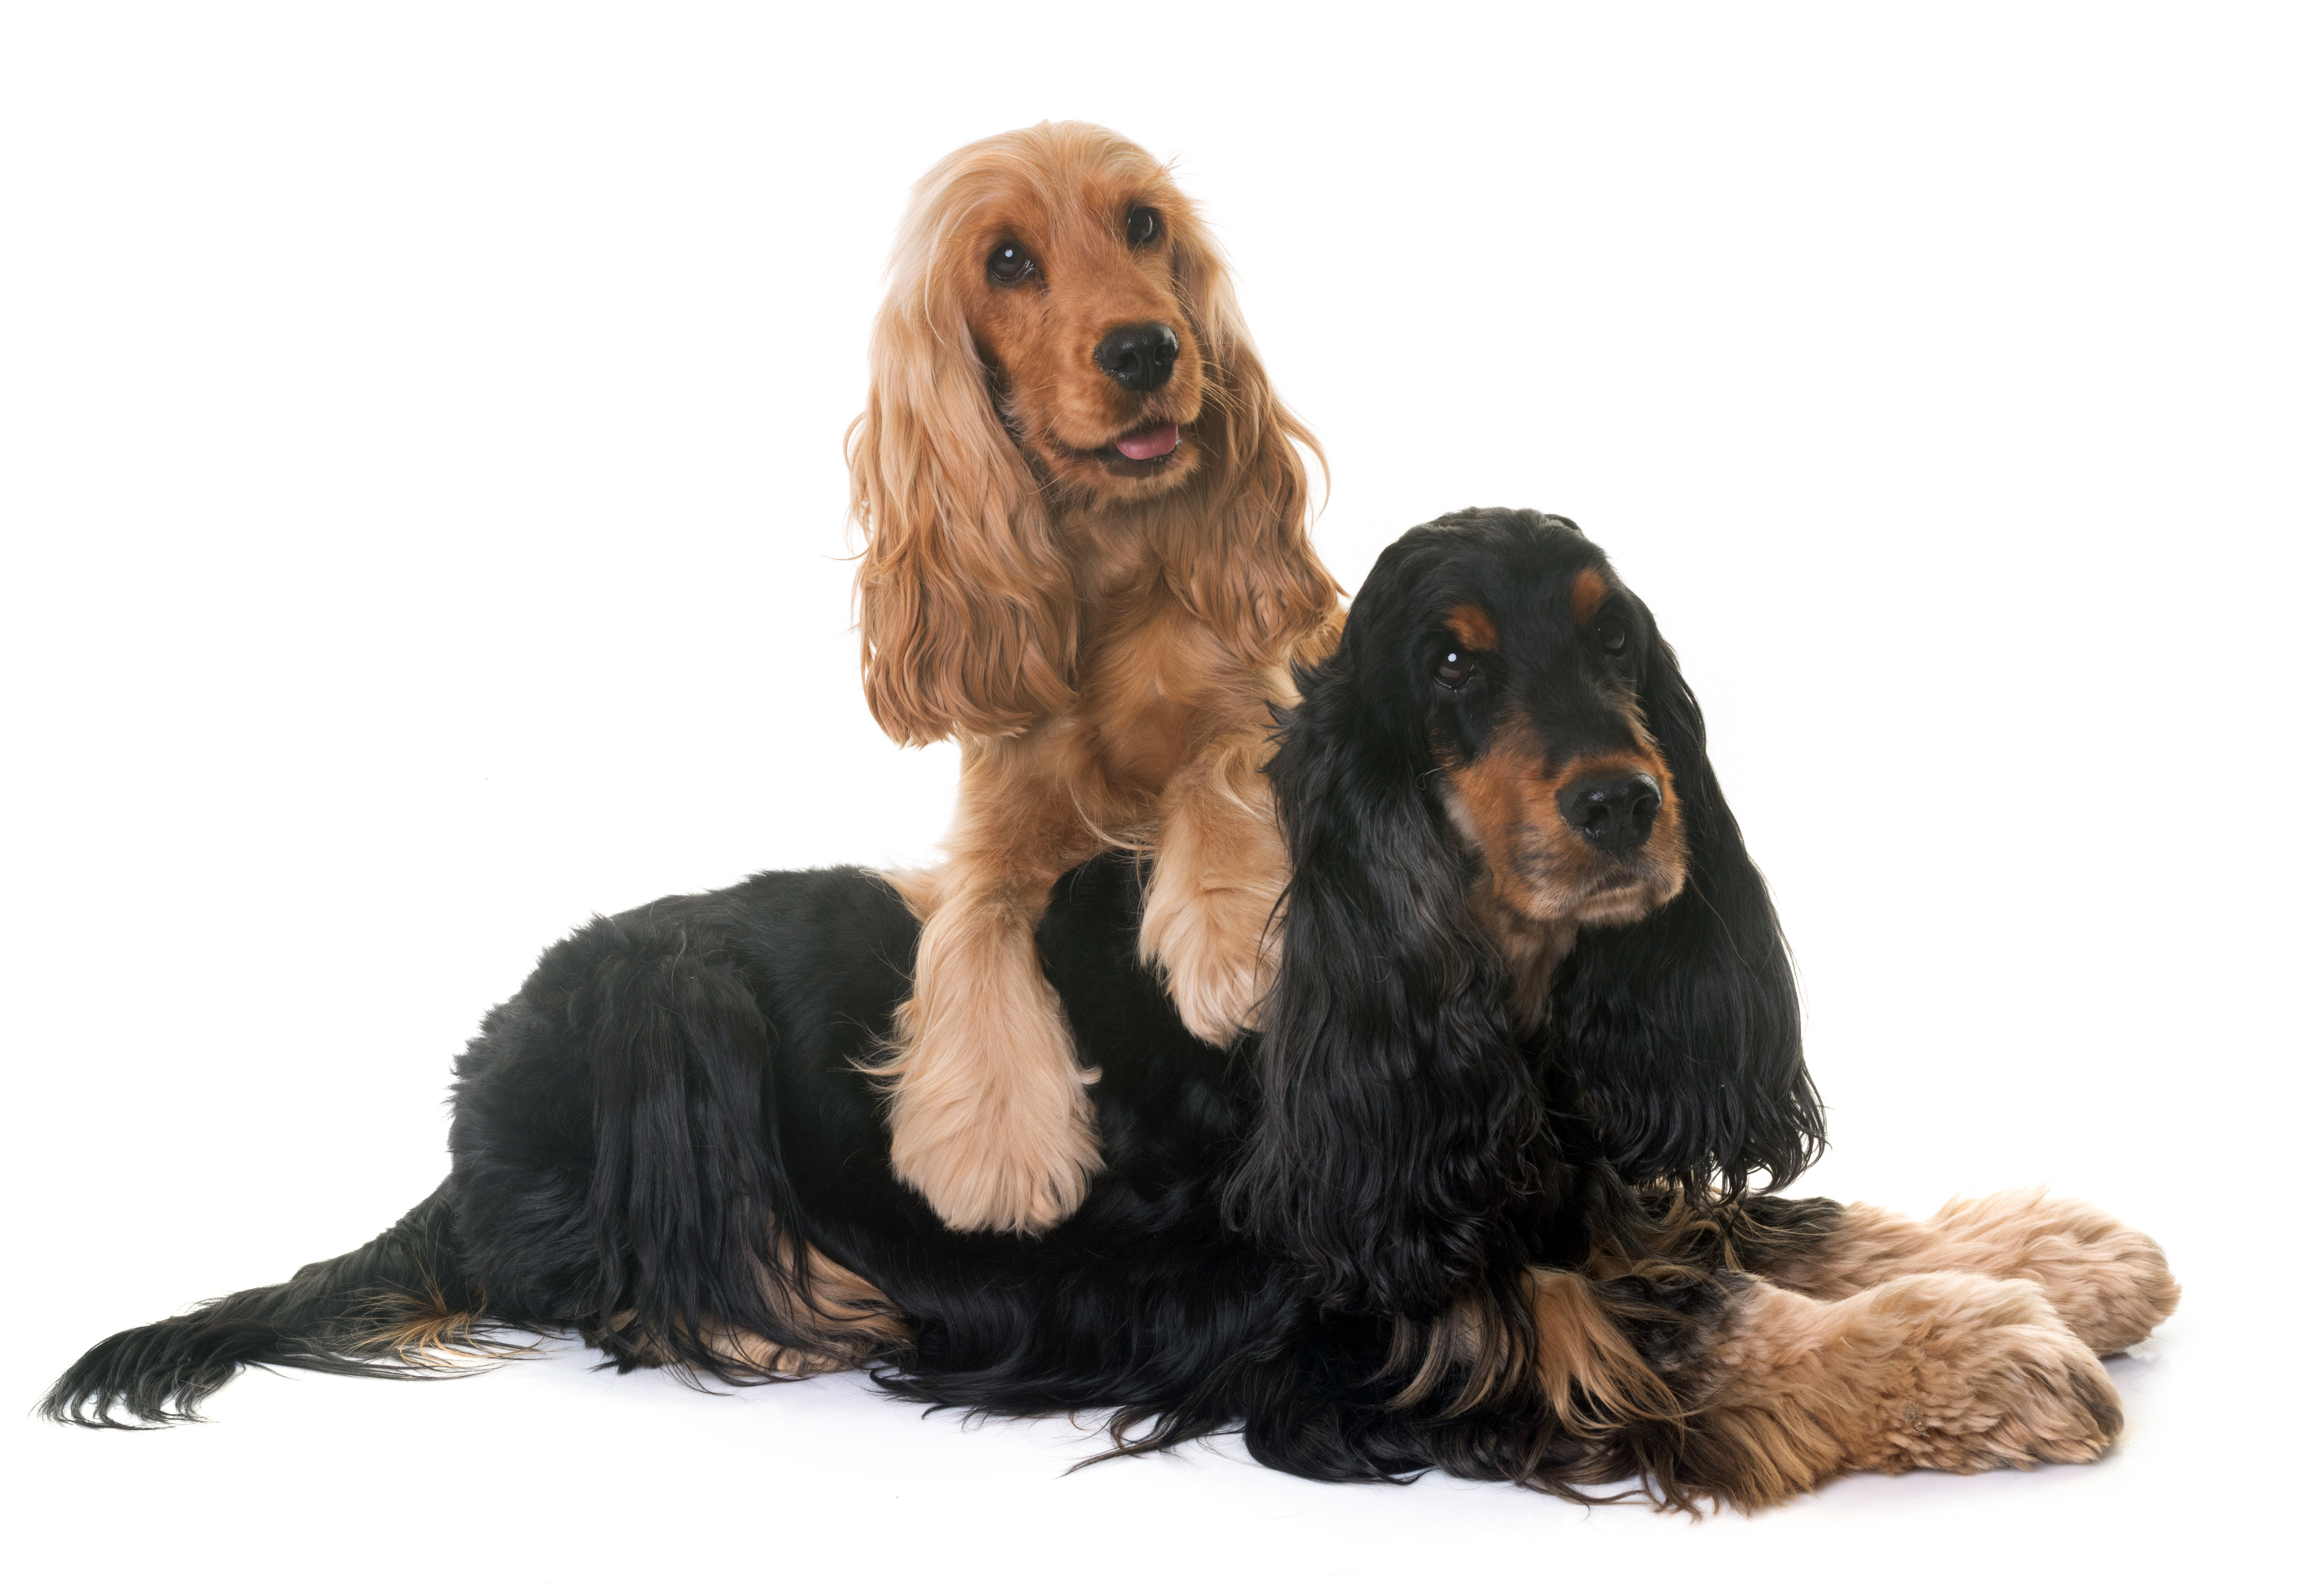 Two English Cocker Spaniels in front of white background